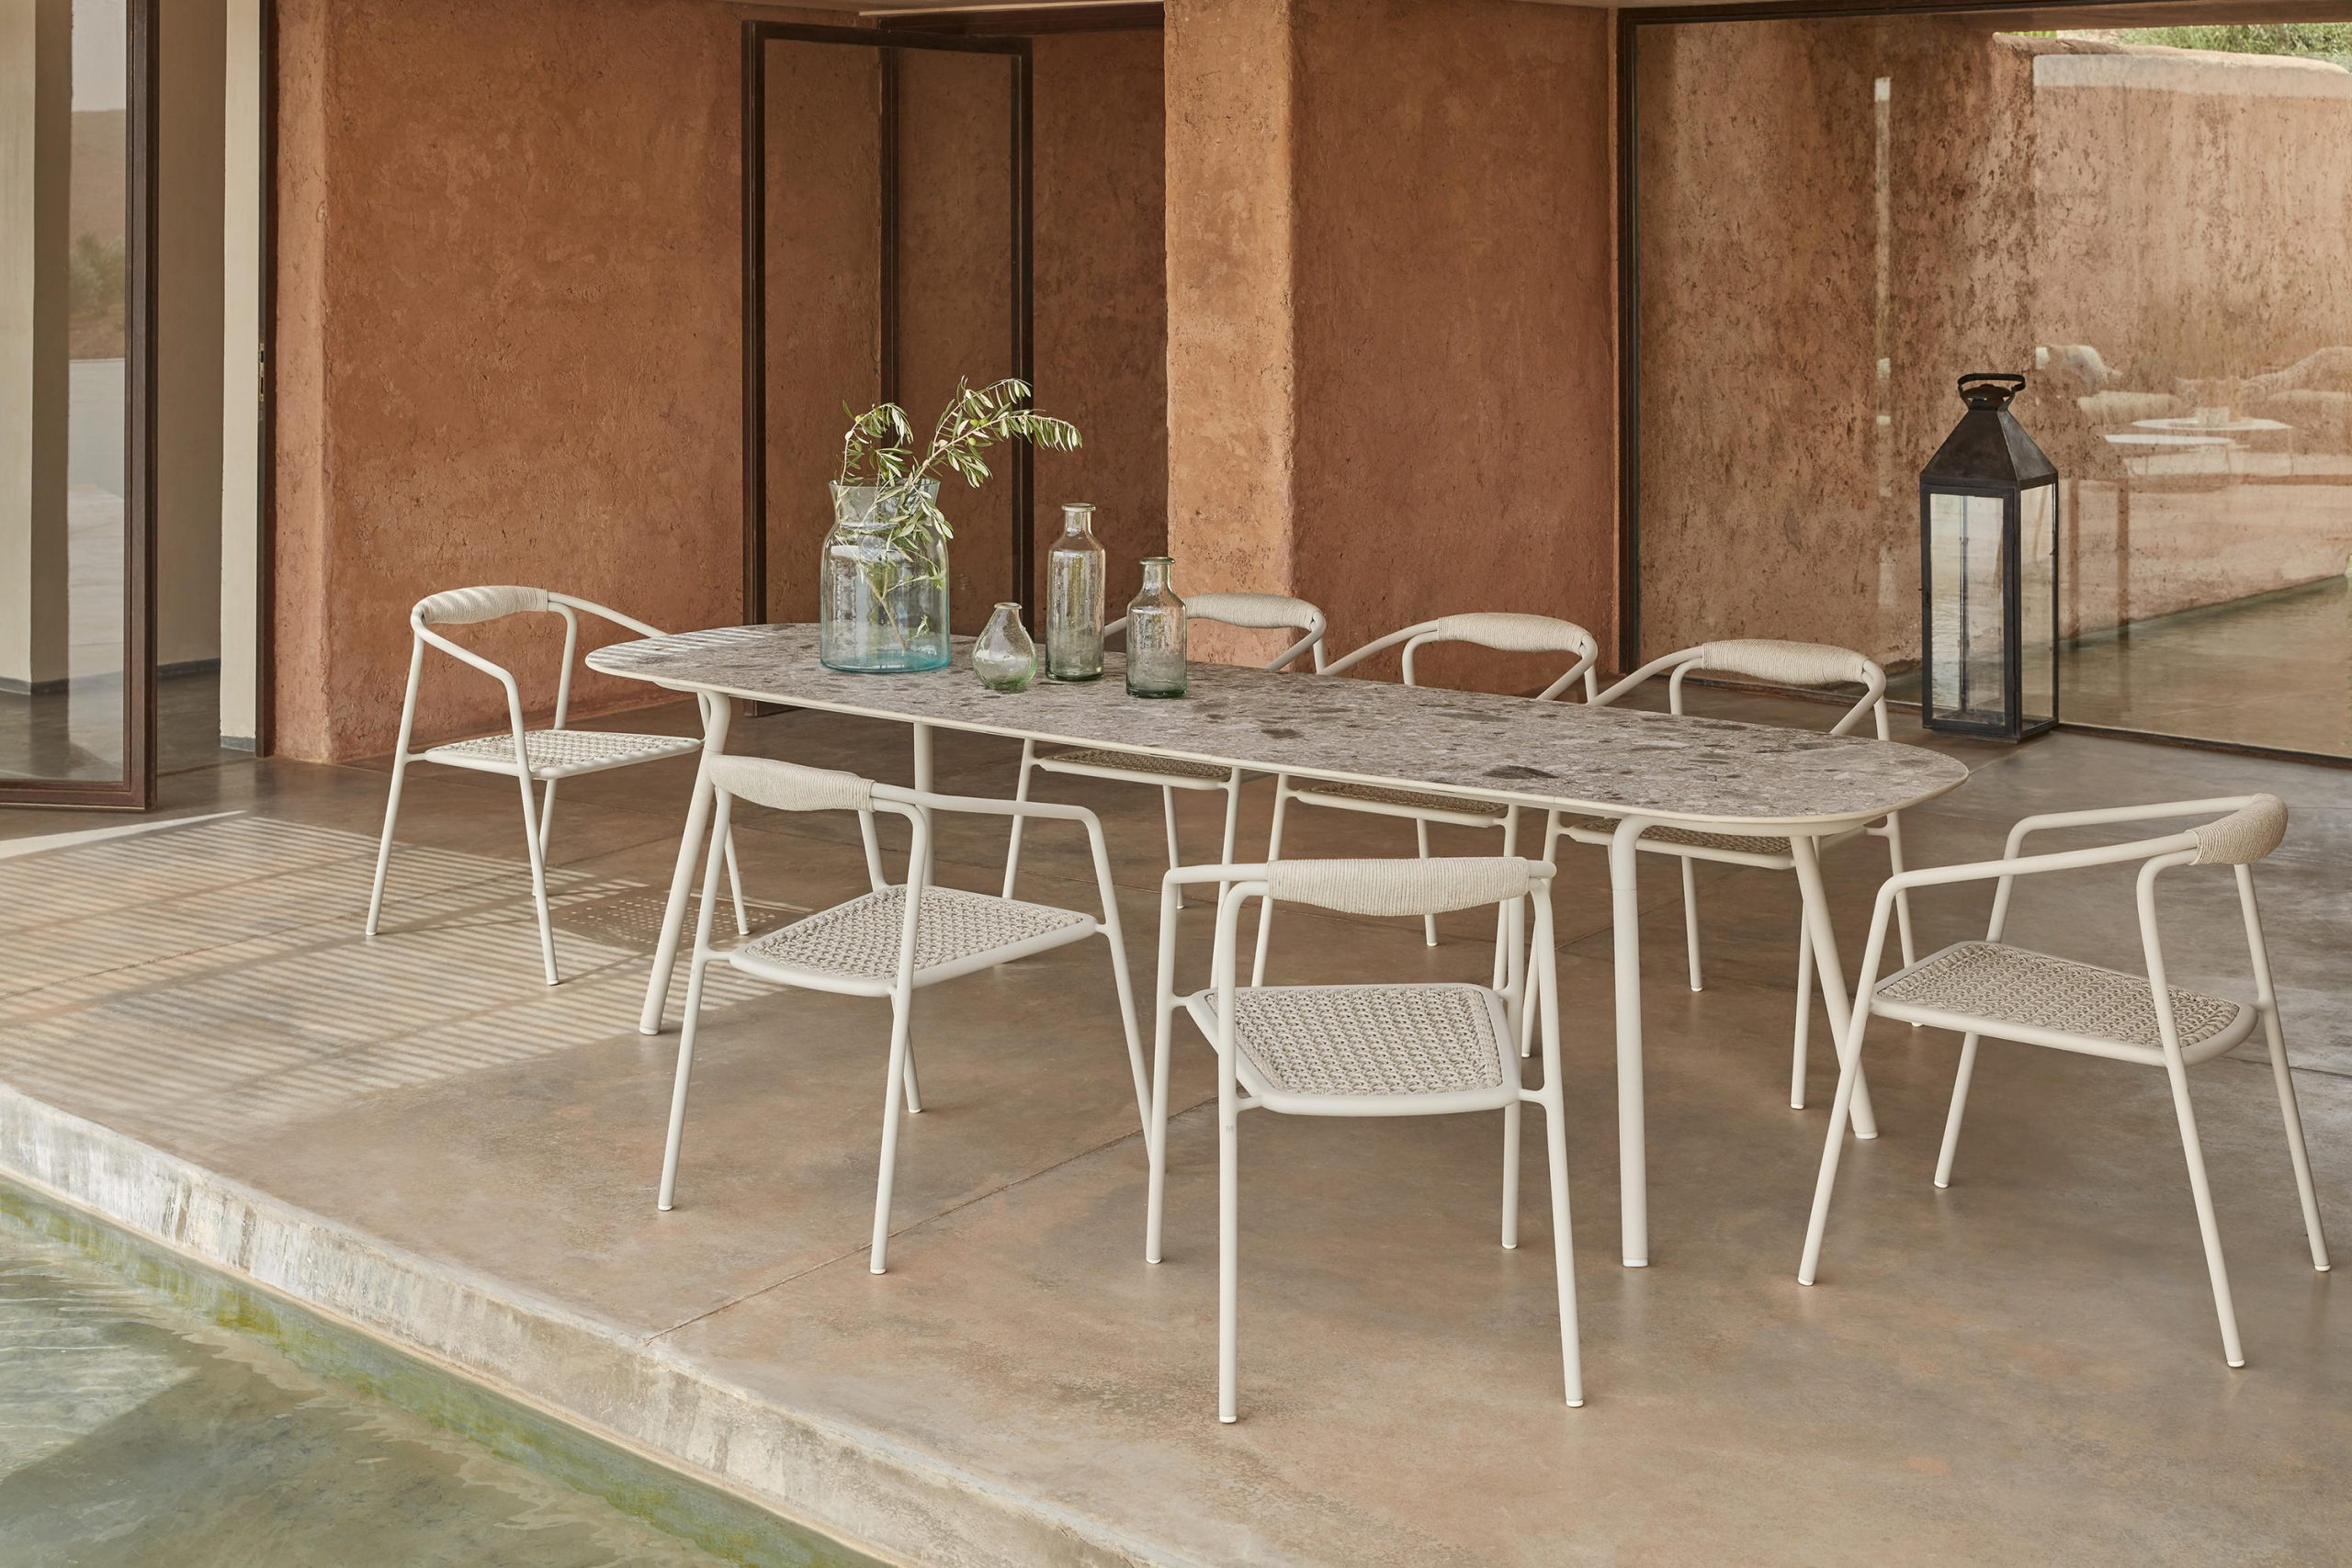 Minus Tables by Manutti